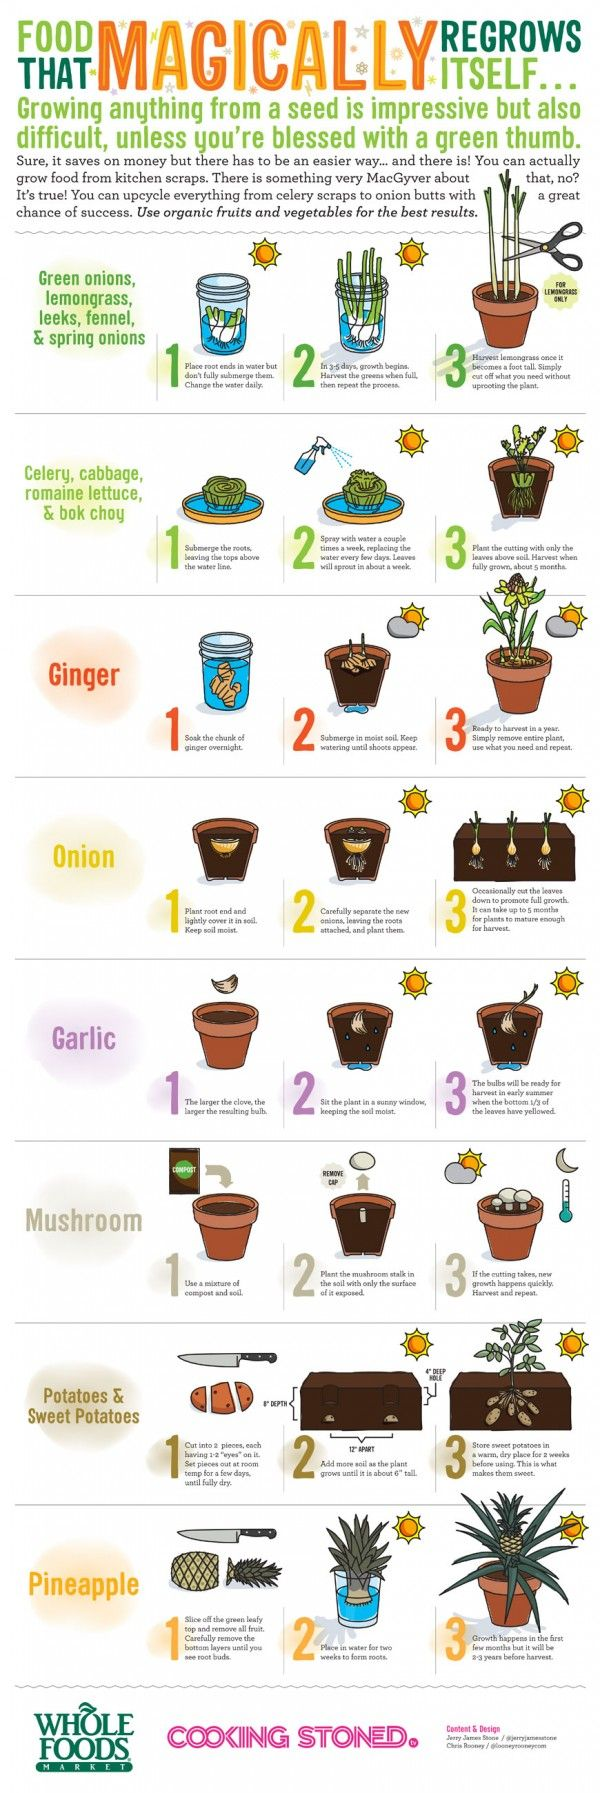 ~Food That Magically Regrows Itself from Kitchen Scraps